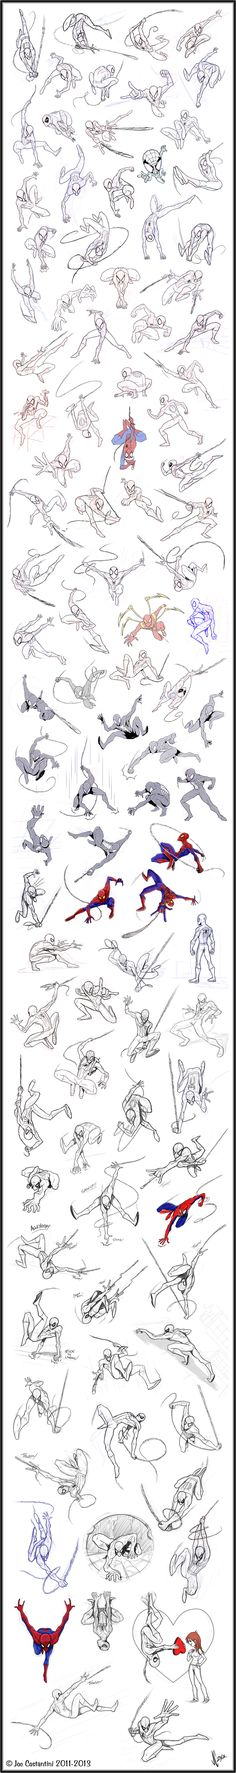 100 Spidey Poses by *2Ajoe on deviantART. Please take the time to click this image and visit the artist's DeviantArt page to comment directly with the artist and see more of their works.